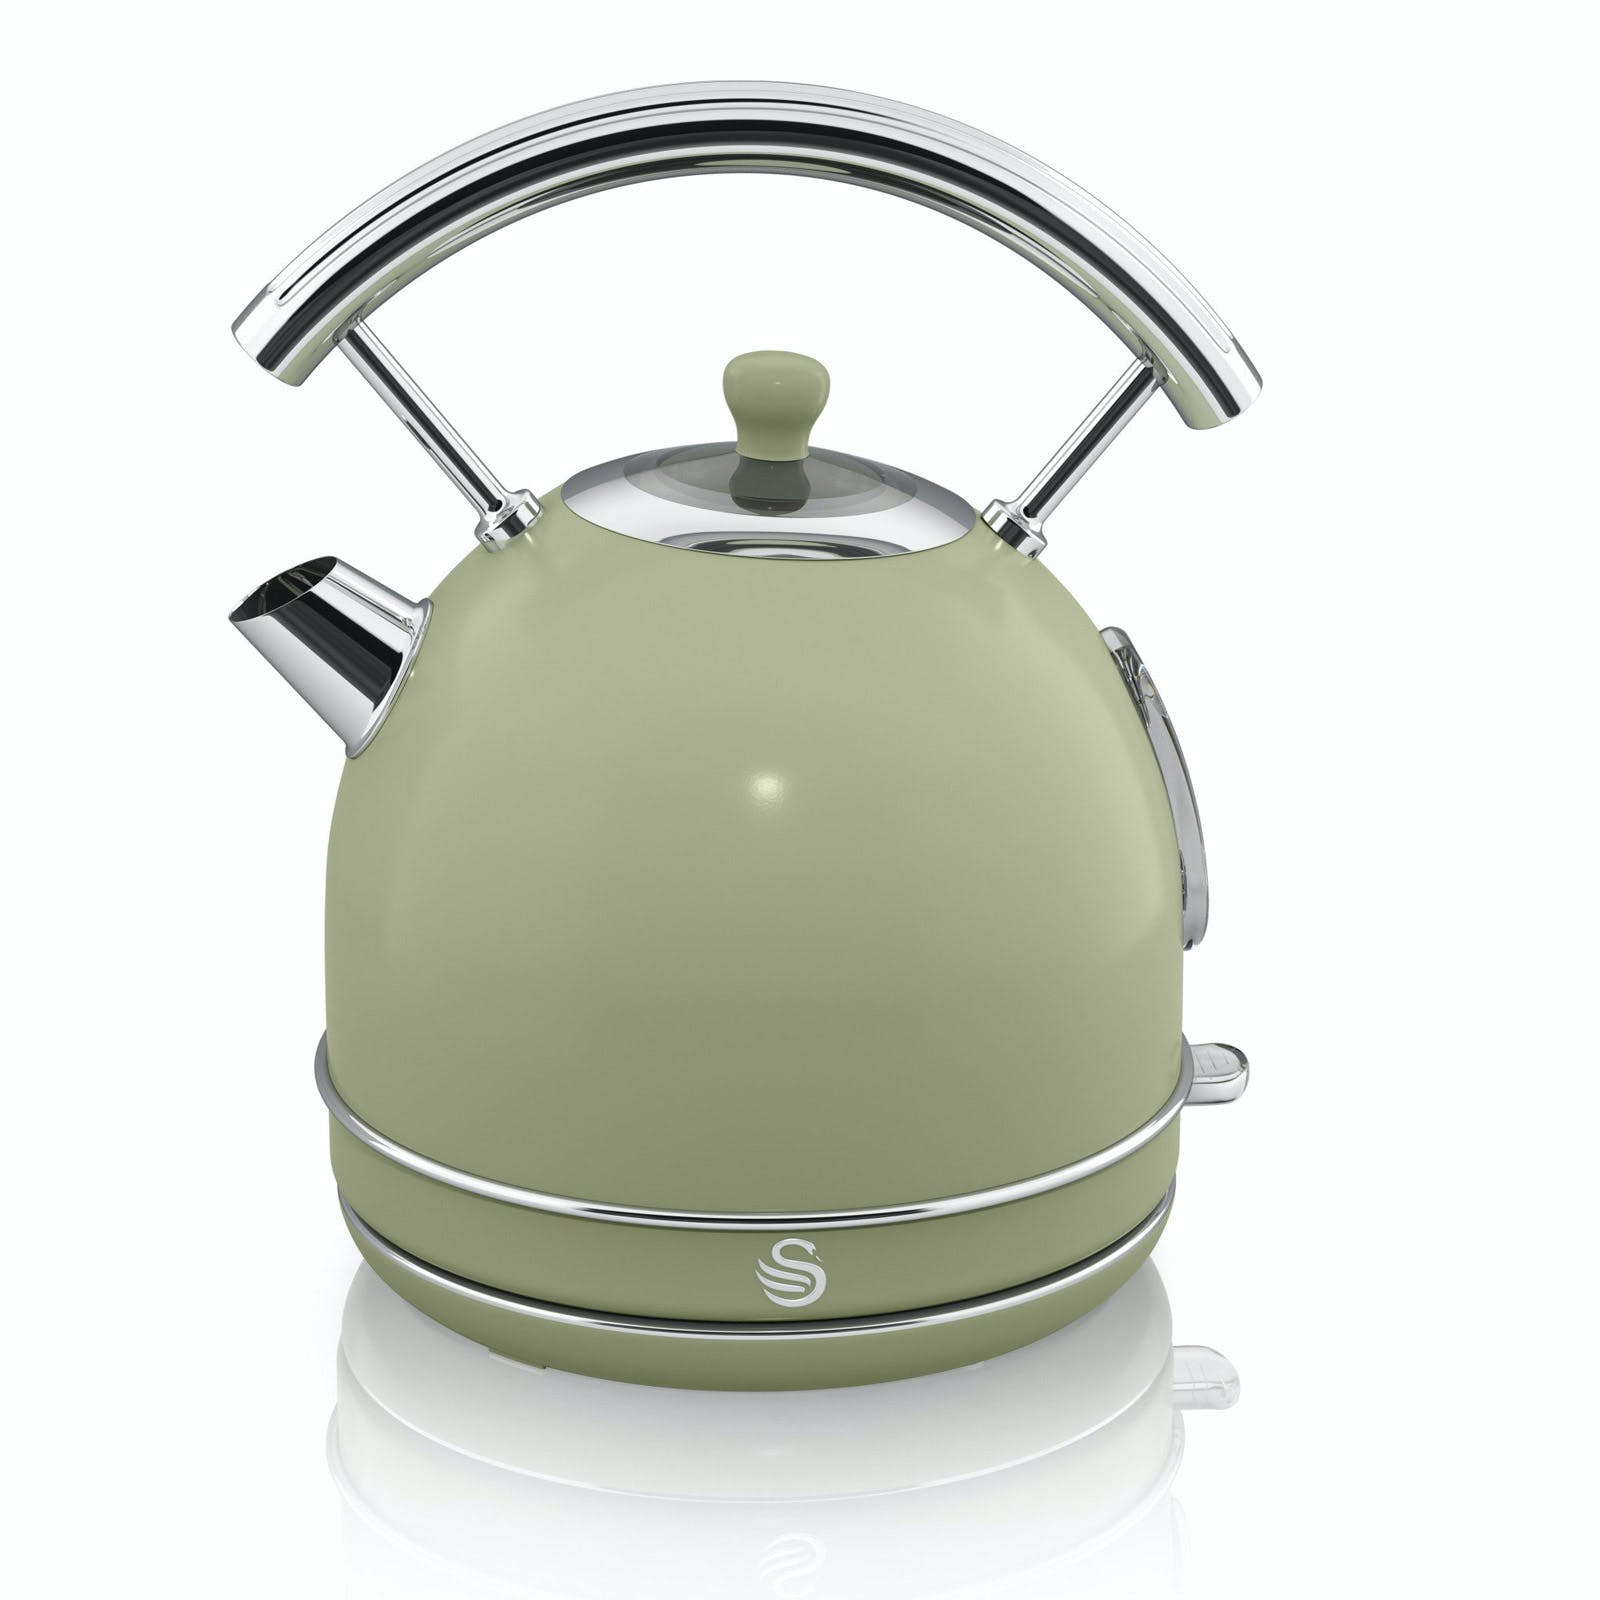 Green Kitchen Kettle: Swan SK34021GN 1.7 Litre Retro Dome Kettle In Green, 3.0